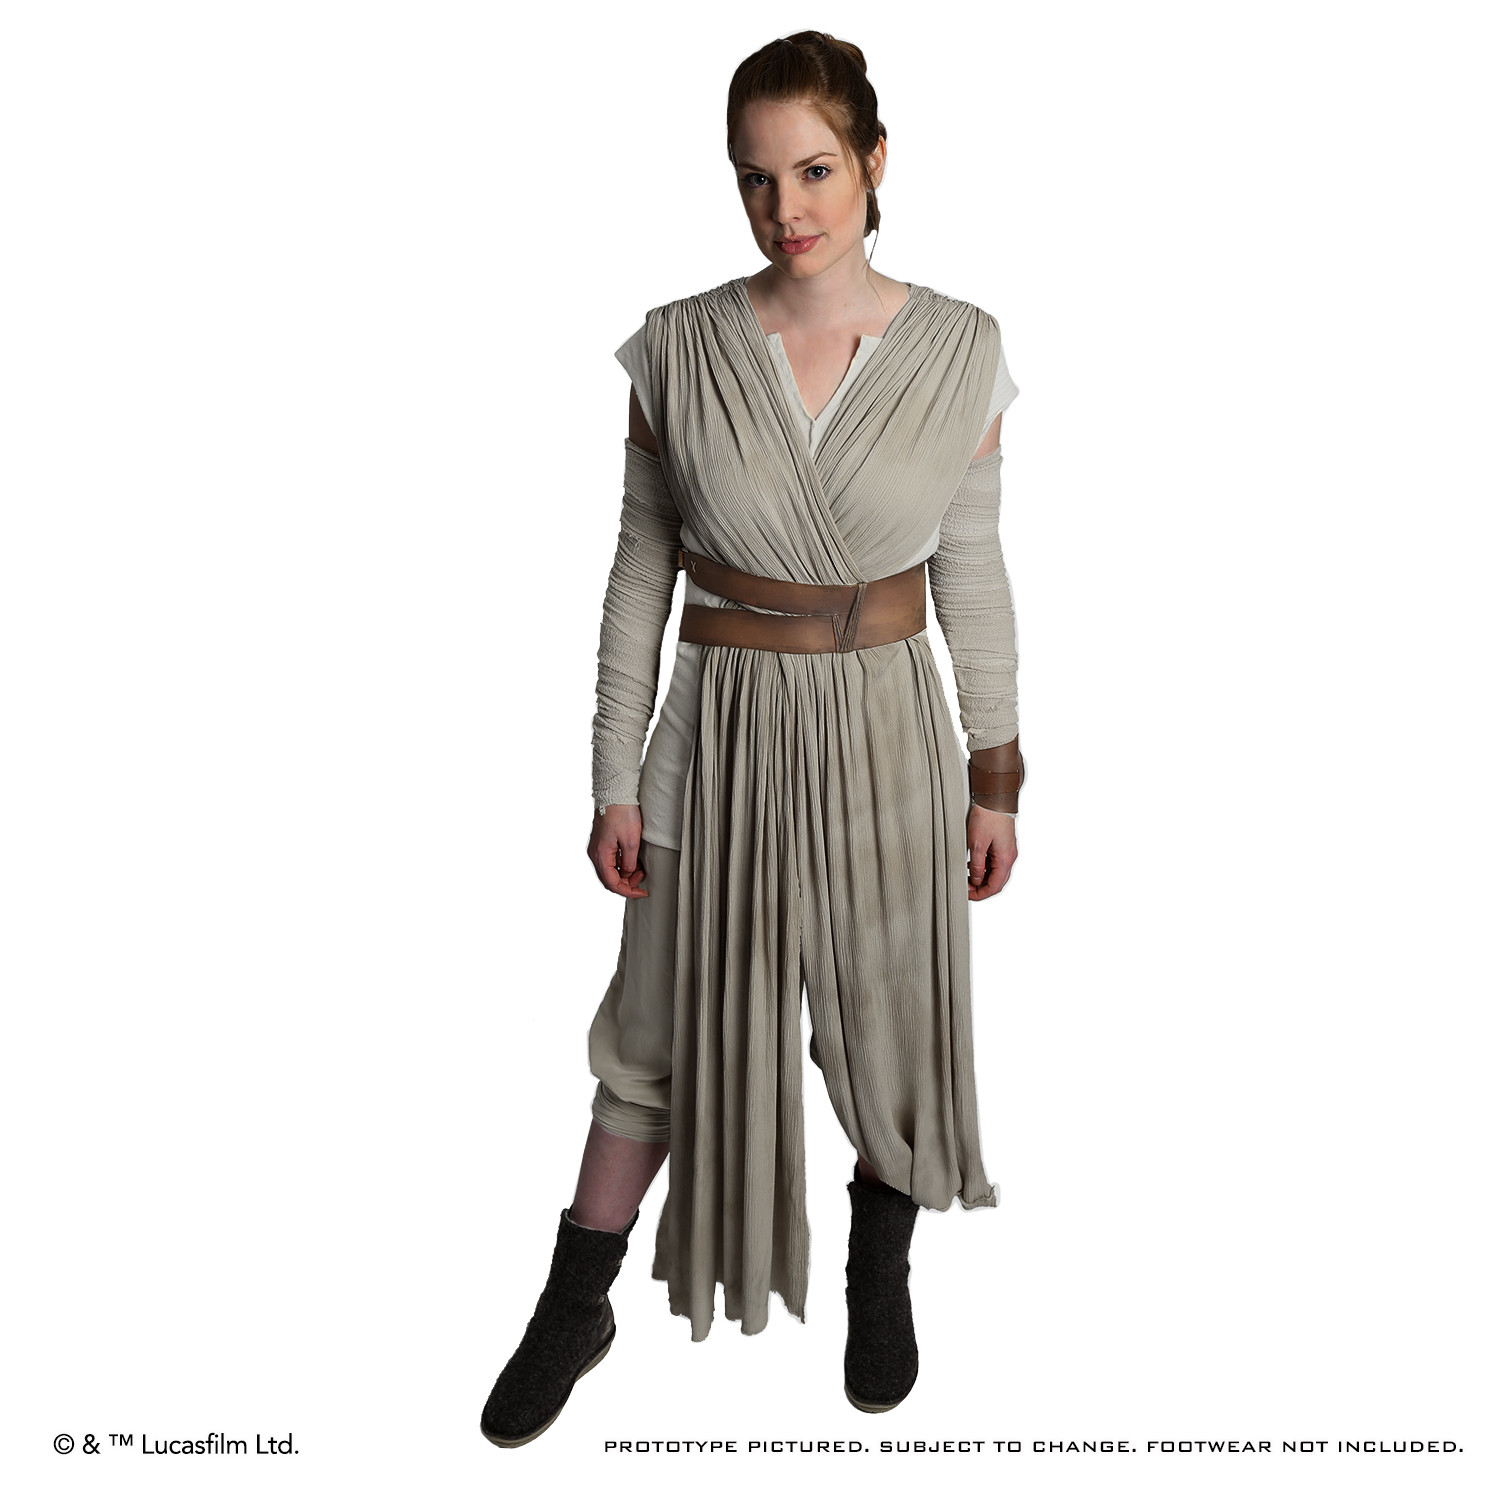 star wars the force awakens rey jakku costume. Black Bedroom Furniture Sets. Home Design Ideas